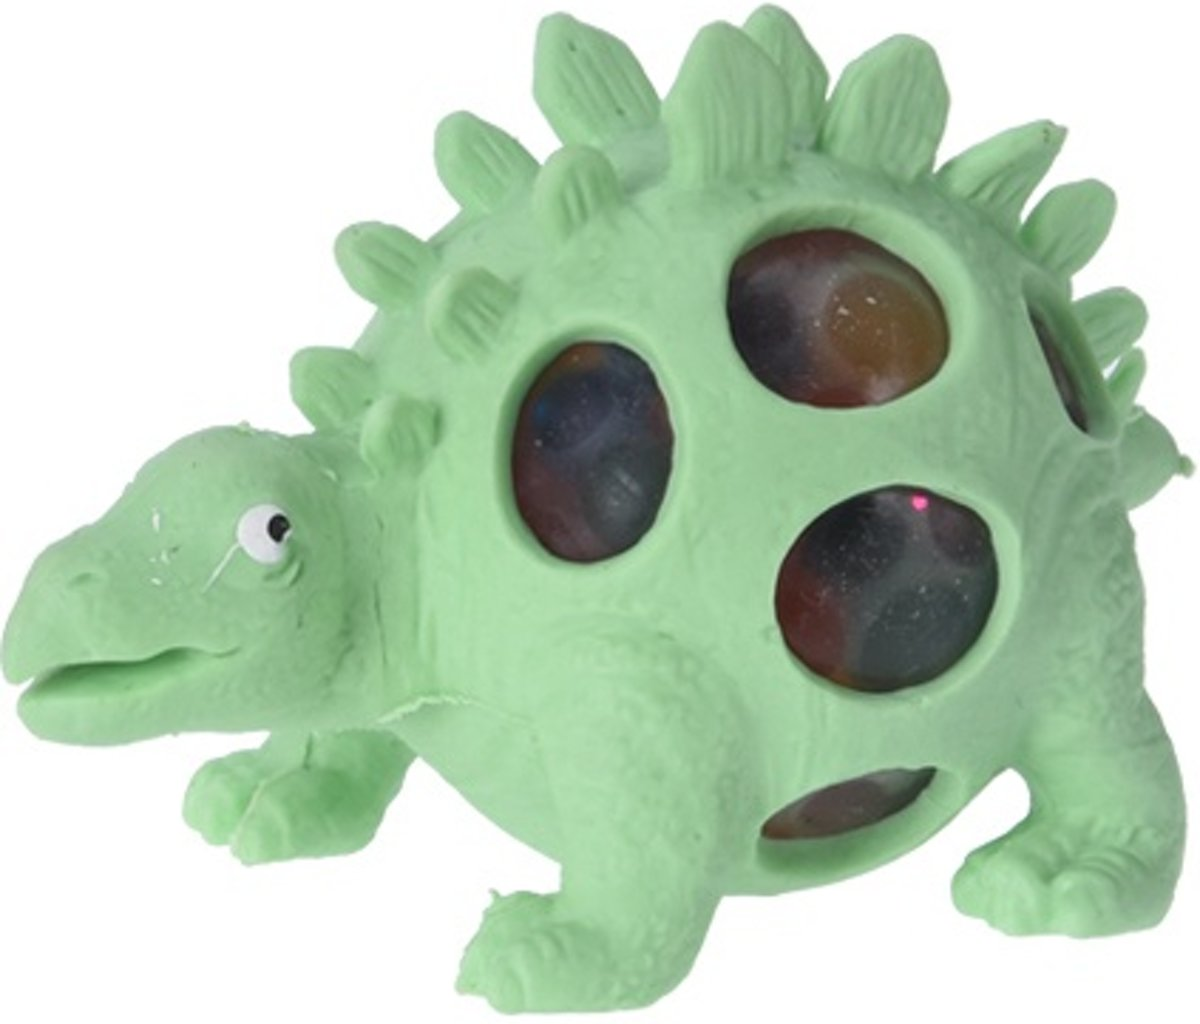 Free And Easy Stressbal Dino Mintgroen 10 Cm